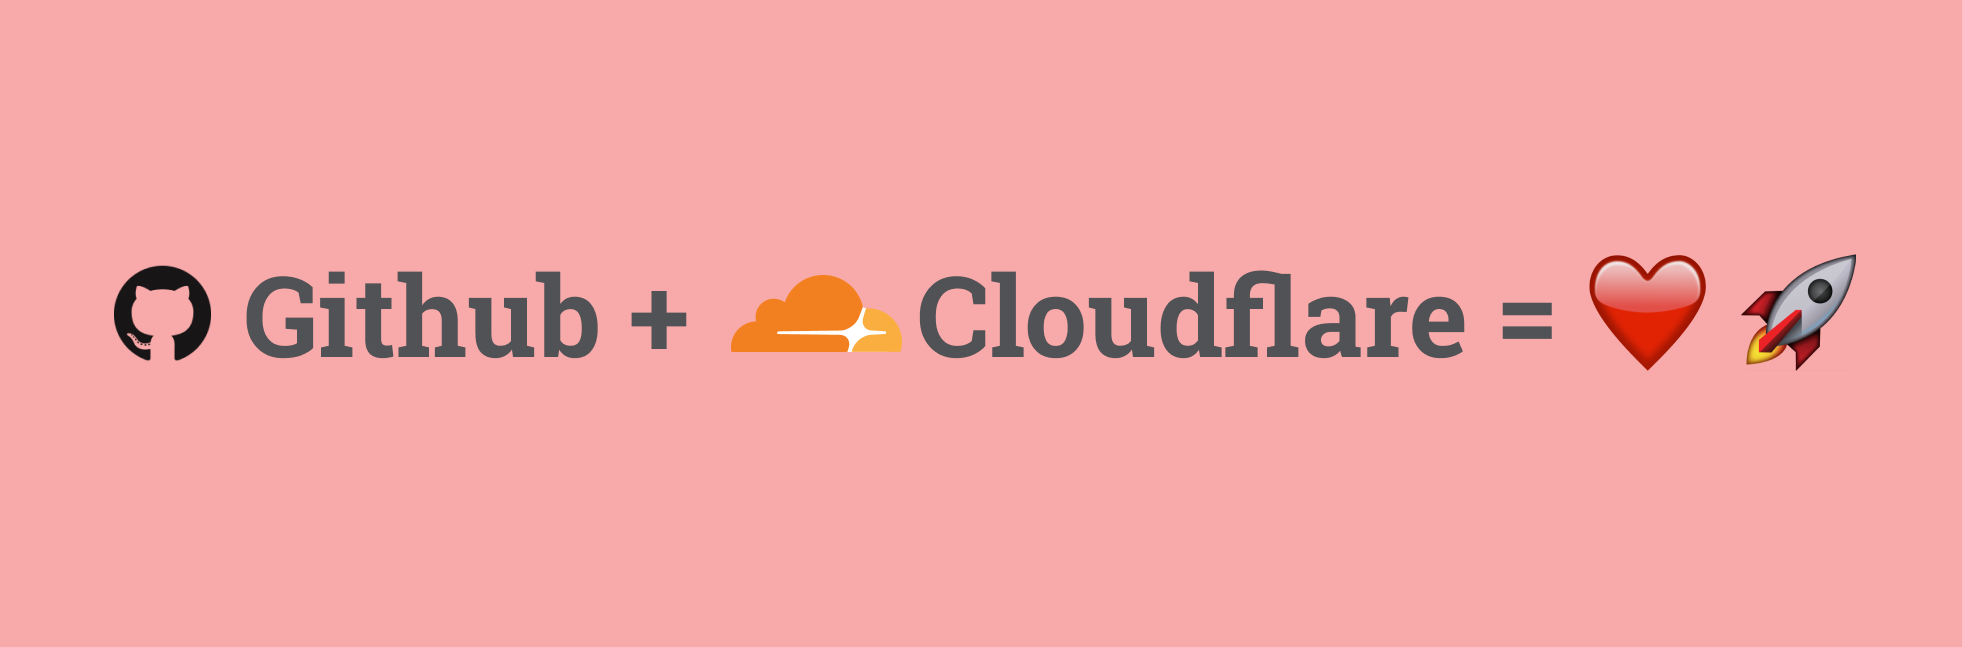 What dating sites use cloudflare